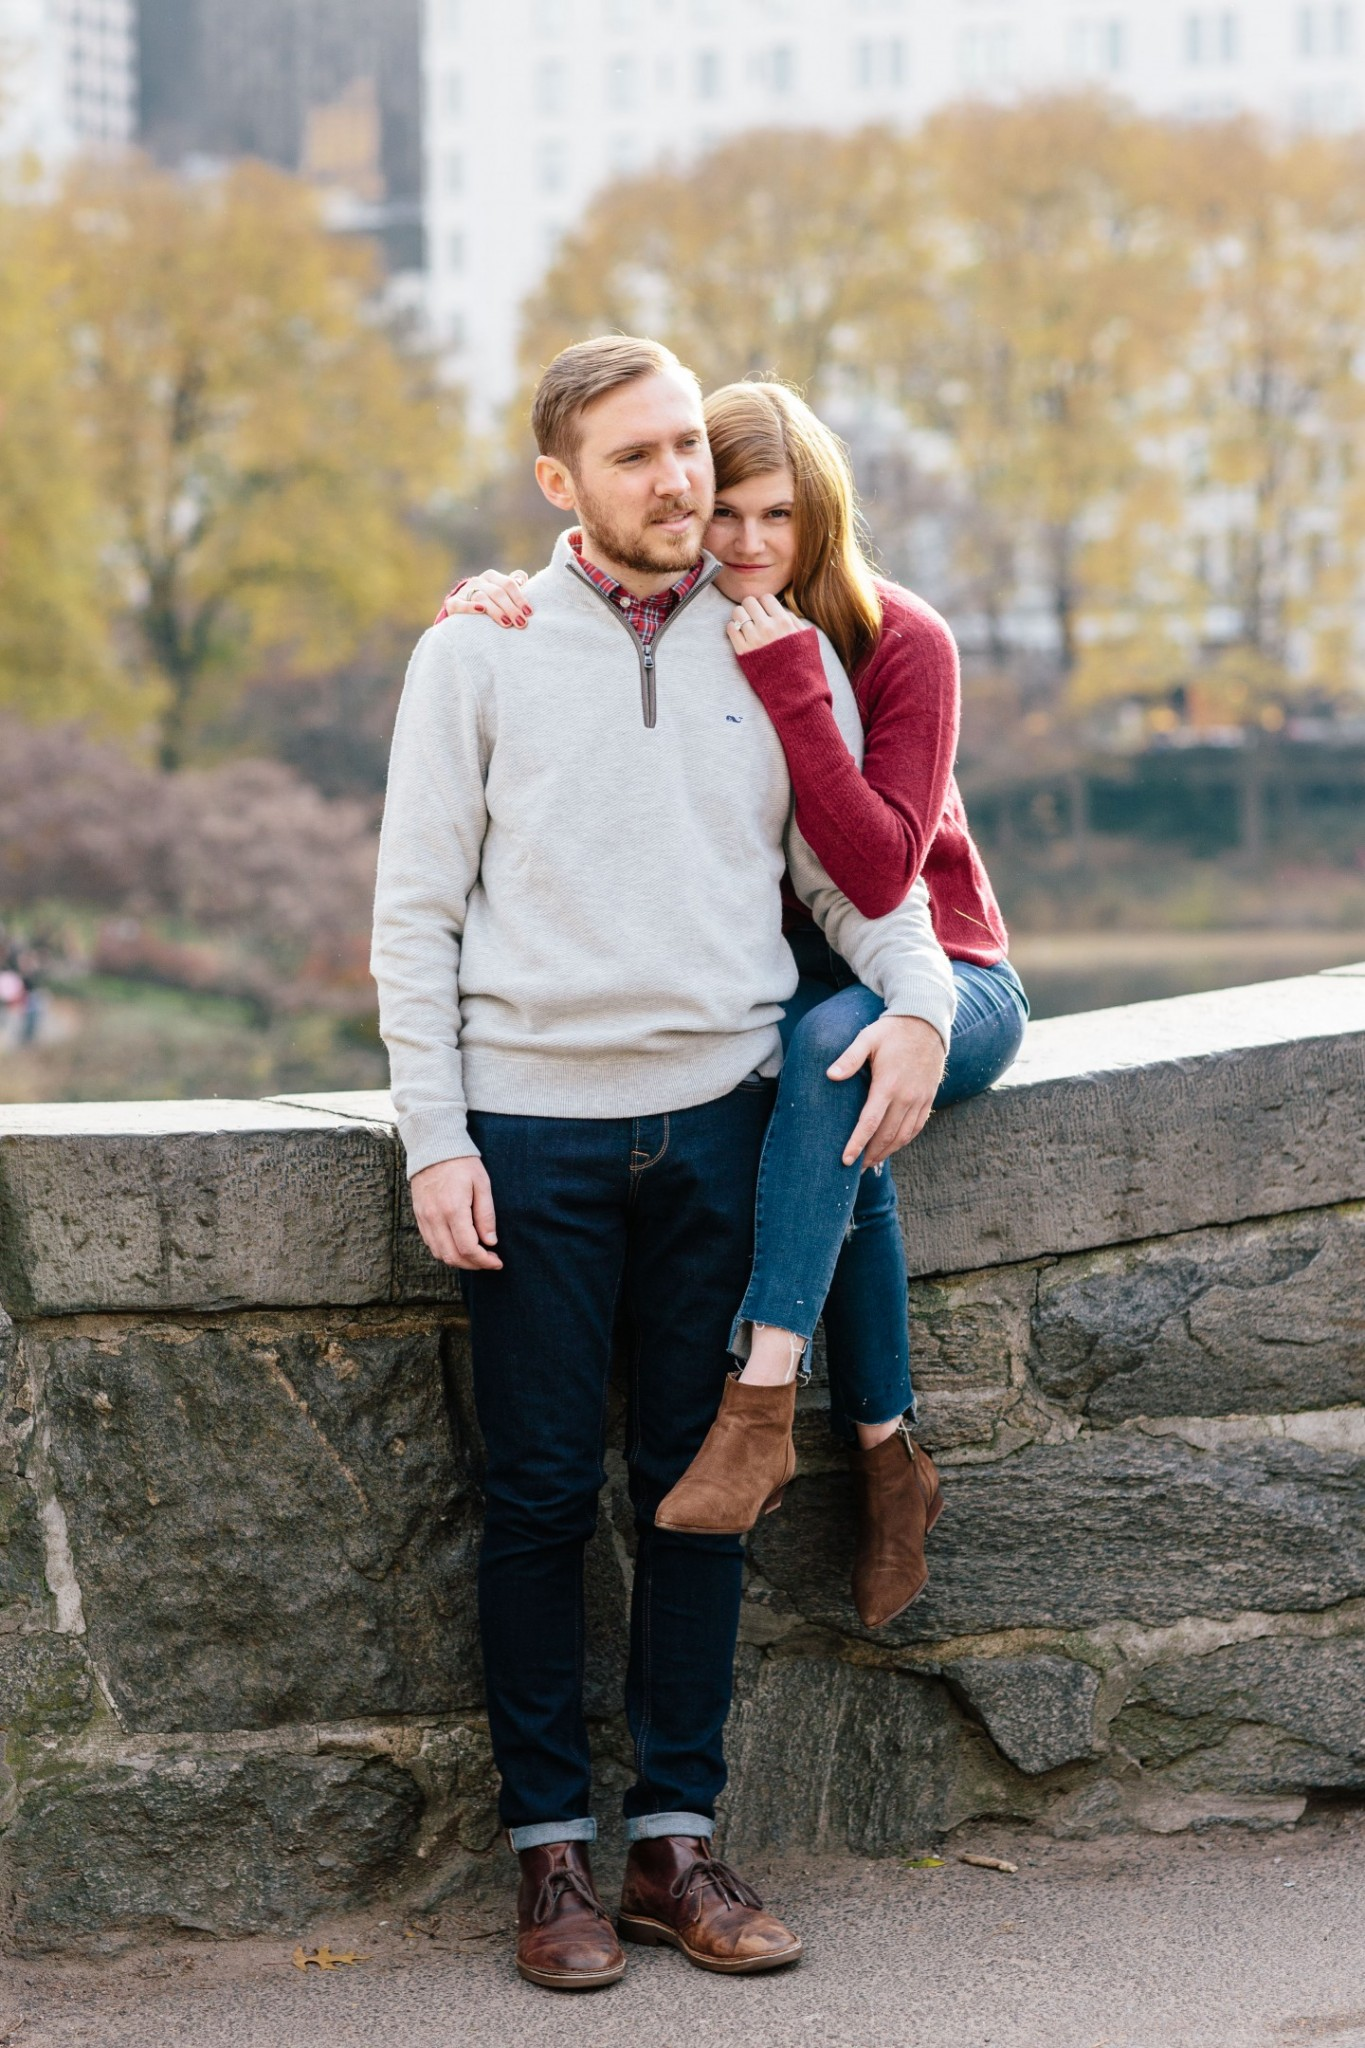 Popular London Lifestyle blogger, Mollie Moore, shares her engagement story